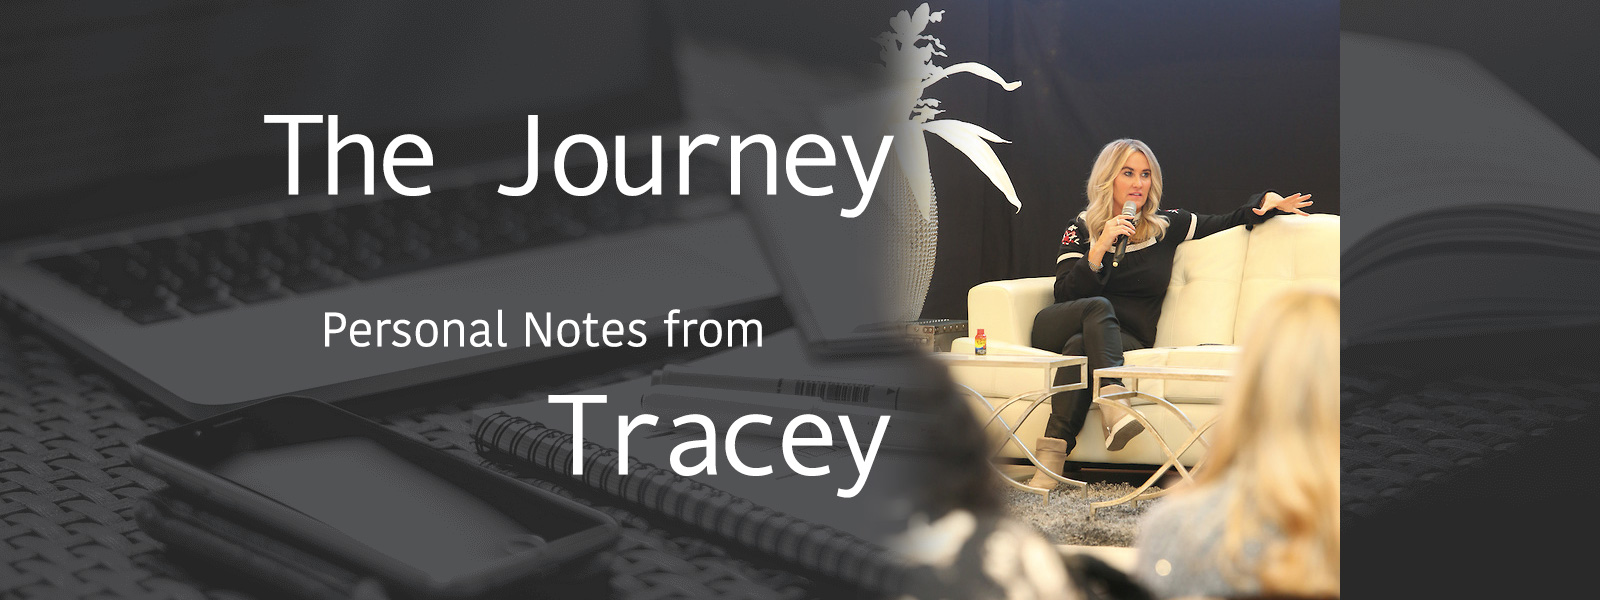 The Journey - Personal notes from Tracey